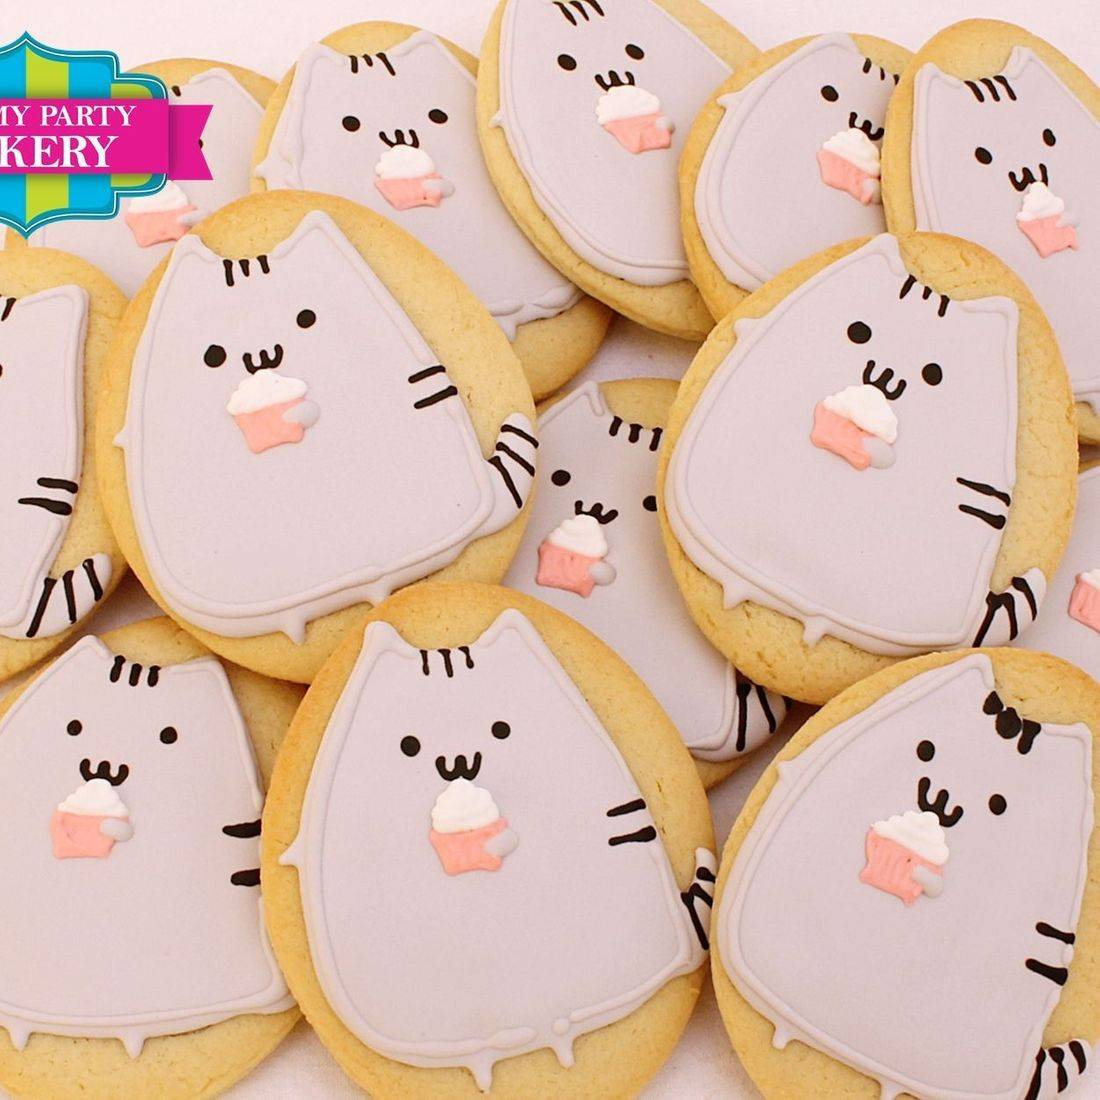 Pusheen cookies Milwaukee